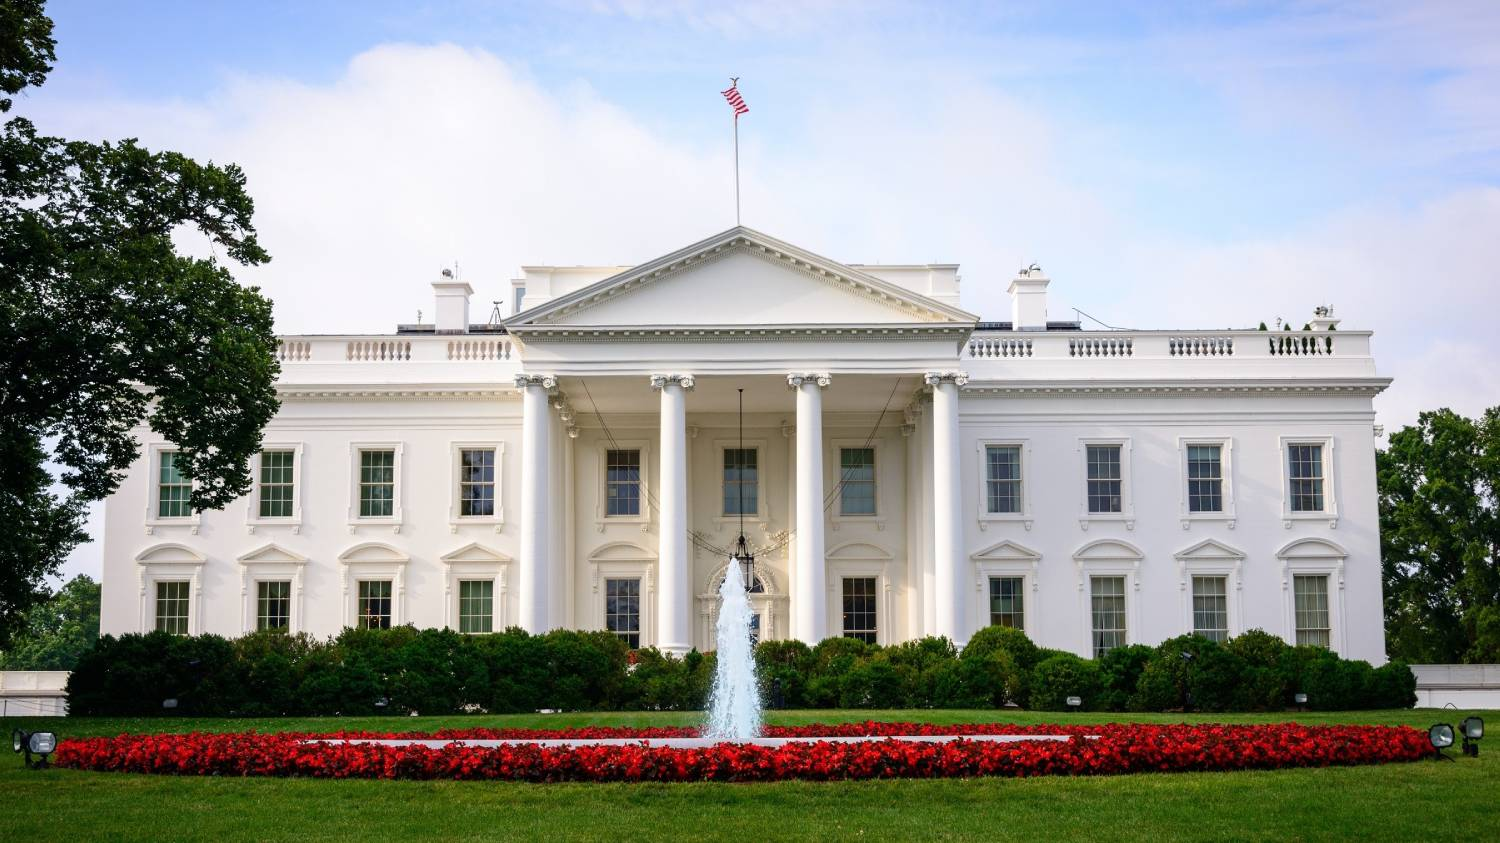 Washington, D.C. - The Best Places To Visit In The United States Of America